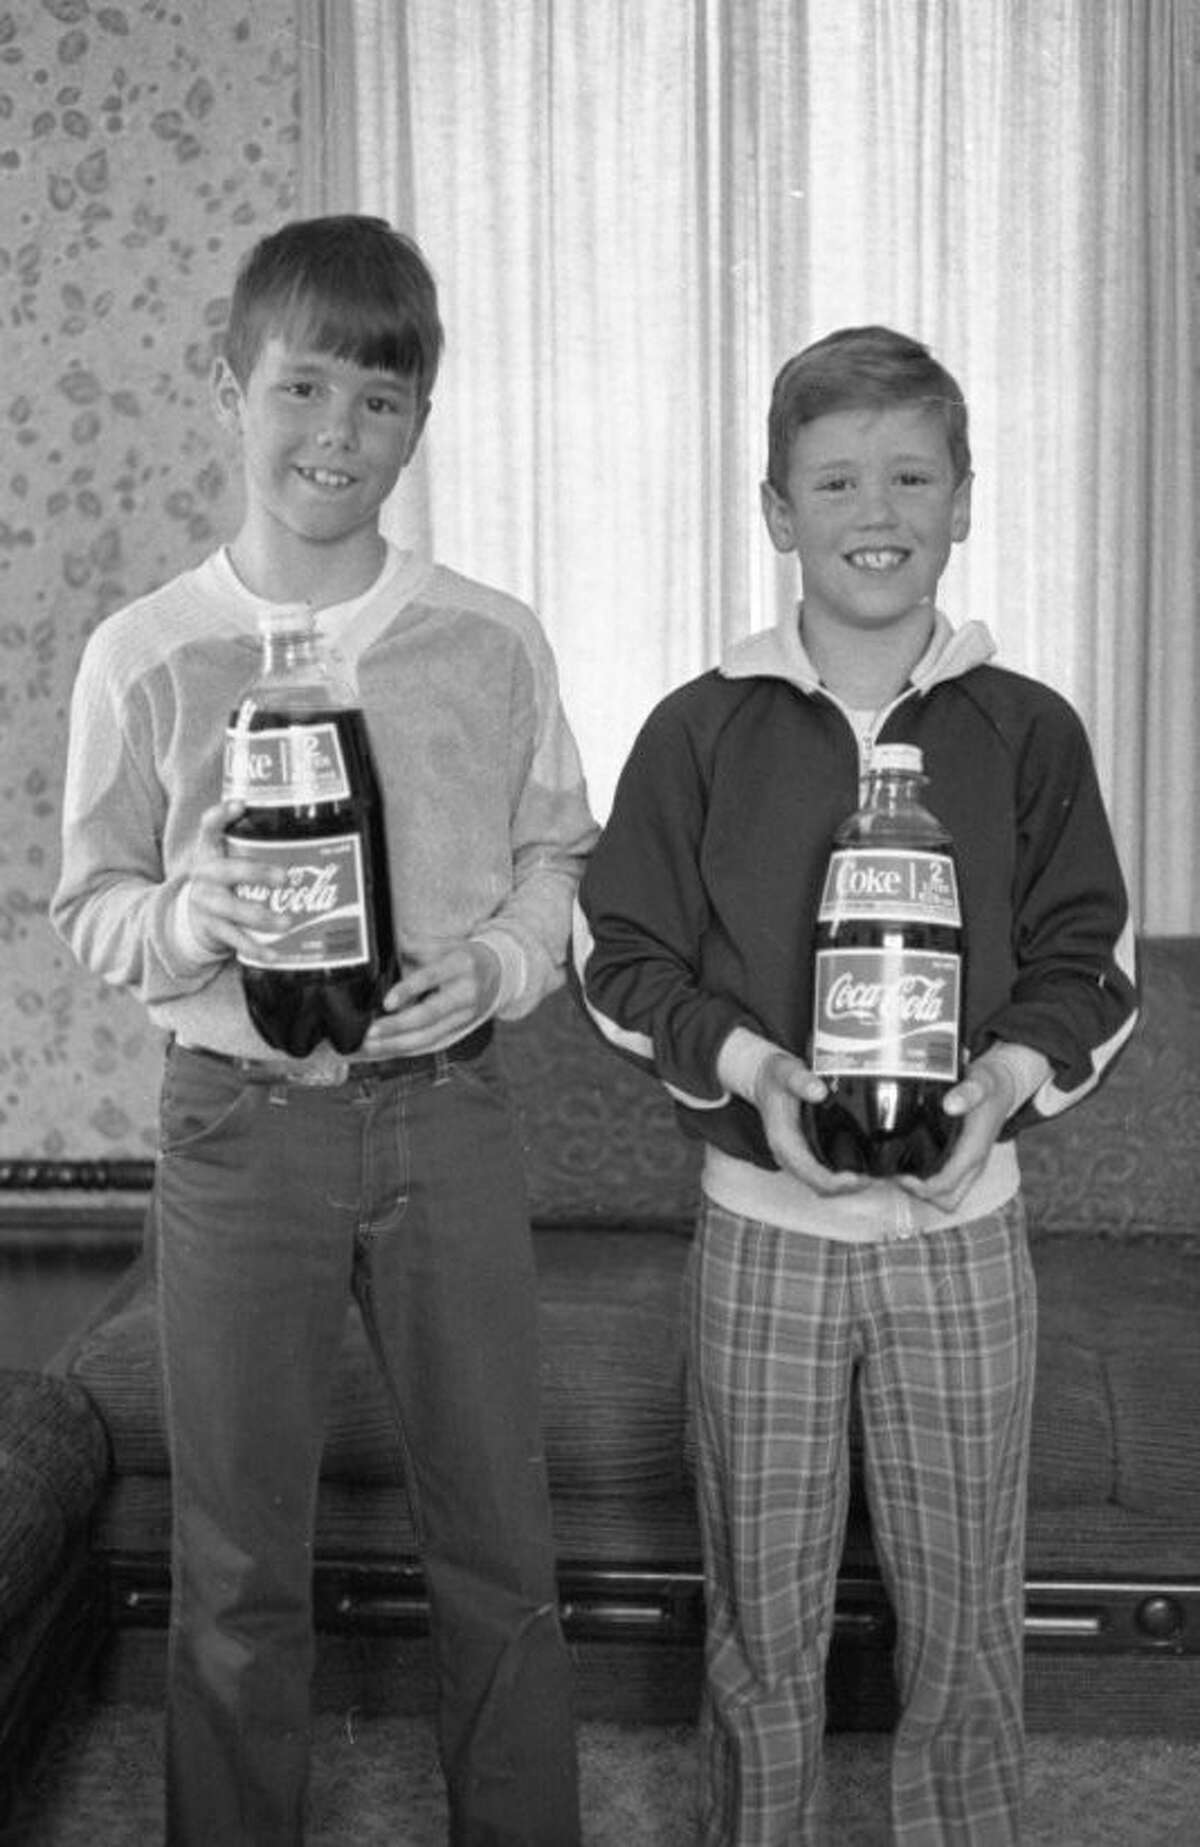 (From left) James Tidd and brother Scott, were winners of a paper carrier contest sponsored by the News Advocate in March of 1981. (Manistee County Historical Museum photo)